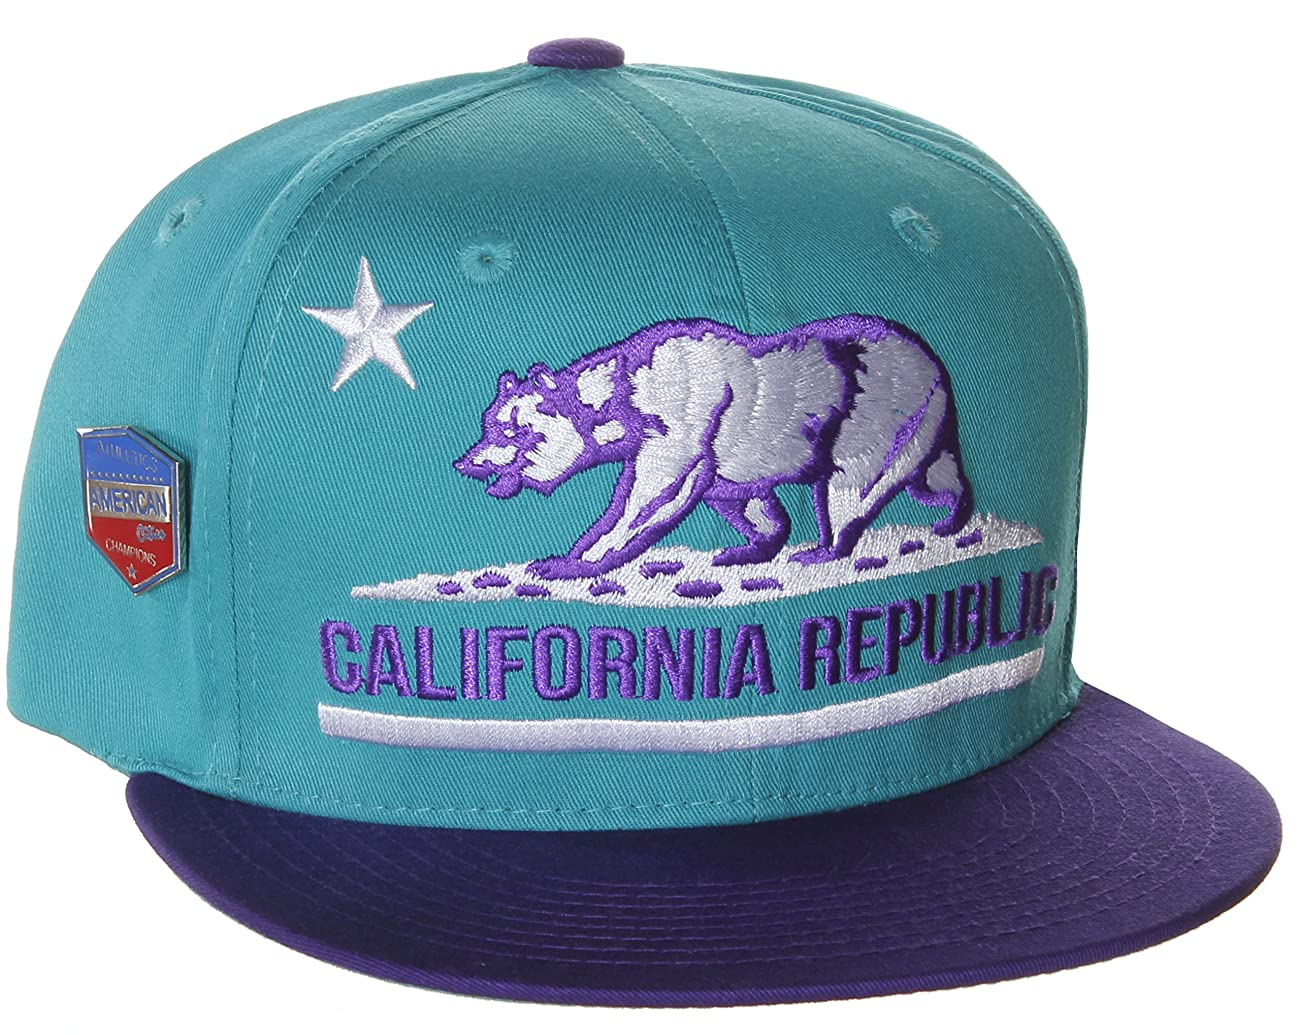 California Republic Flat Bill Vintage Style Snapback Hat Cap 0